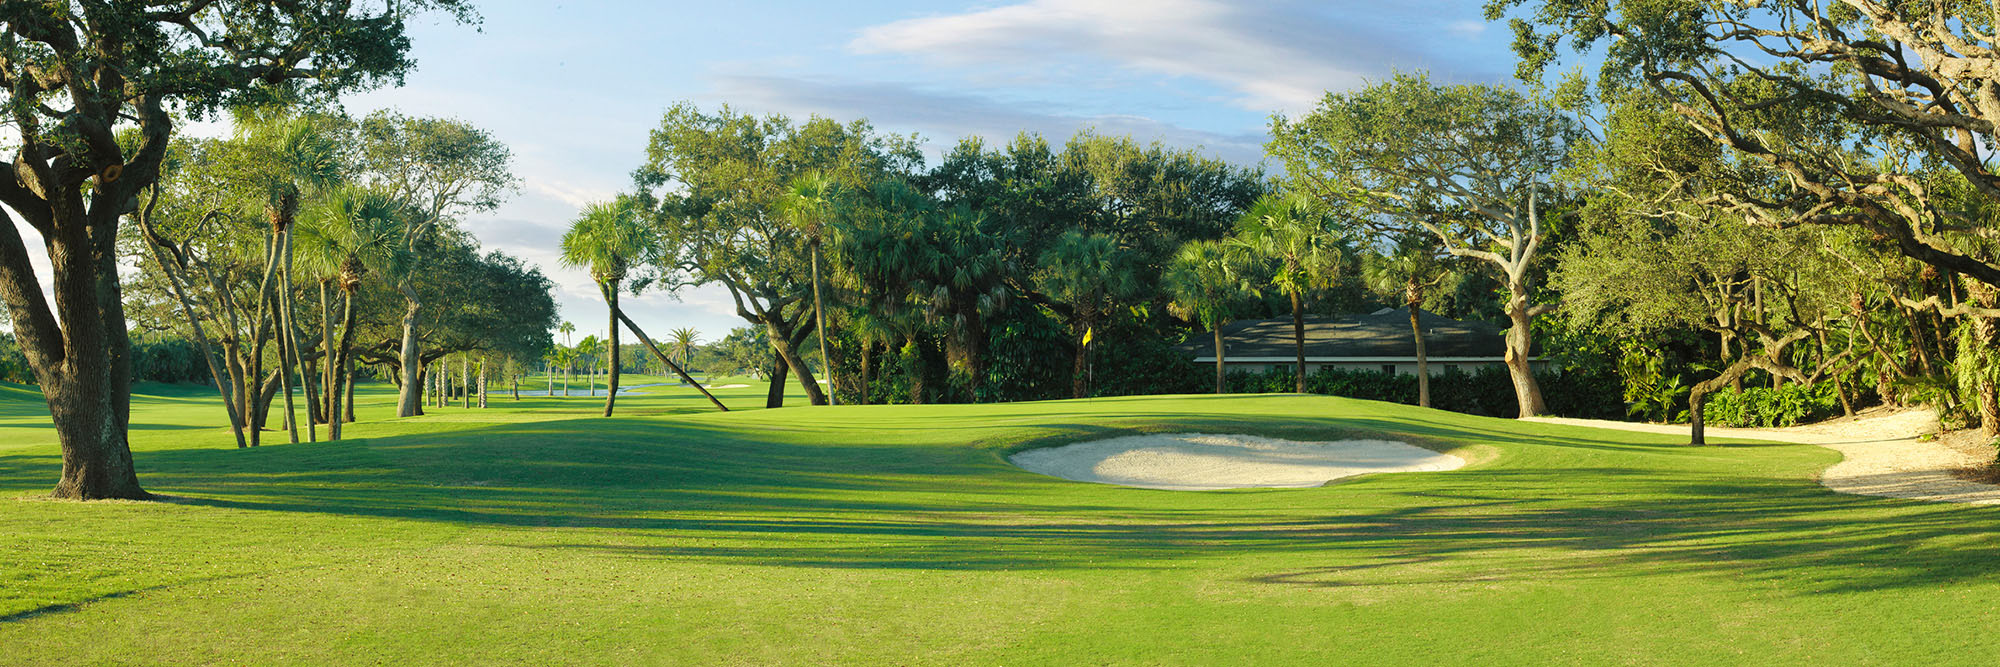 Golf Course Image - Riomar No. 16